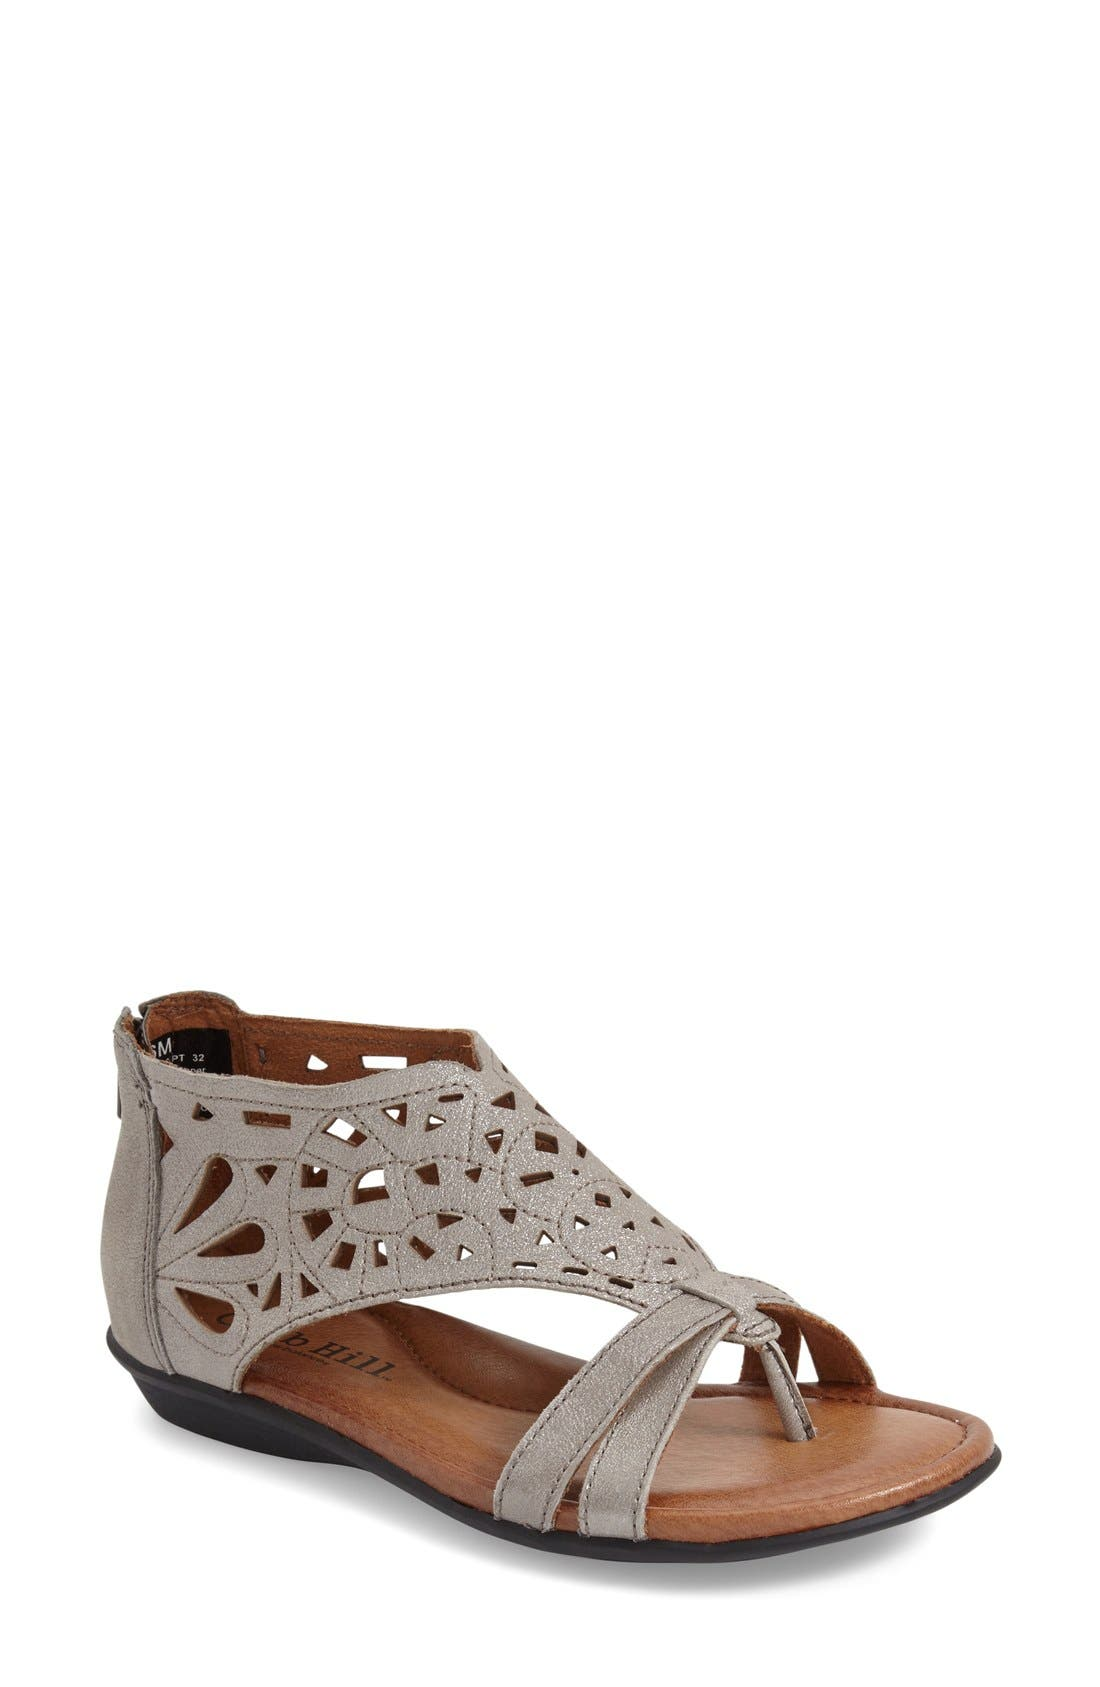 Rockport Cobb Hill 'Jordan' Sandal (Women)